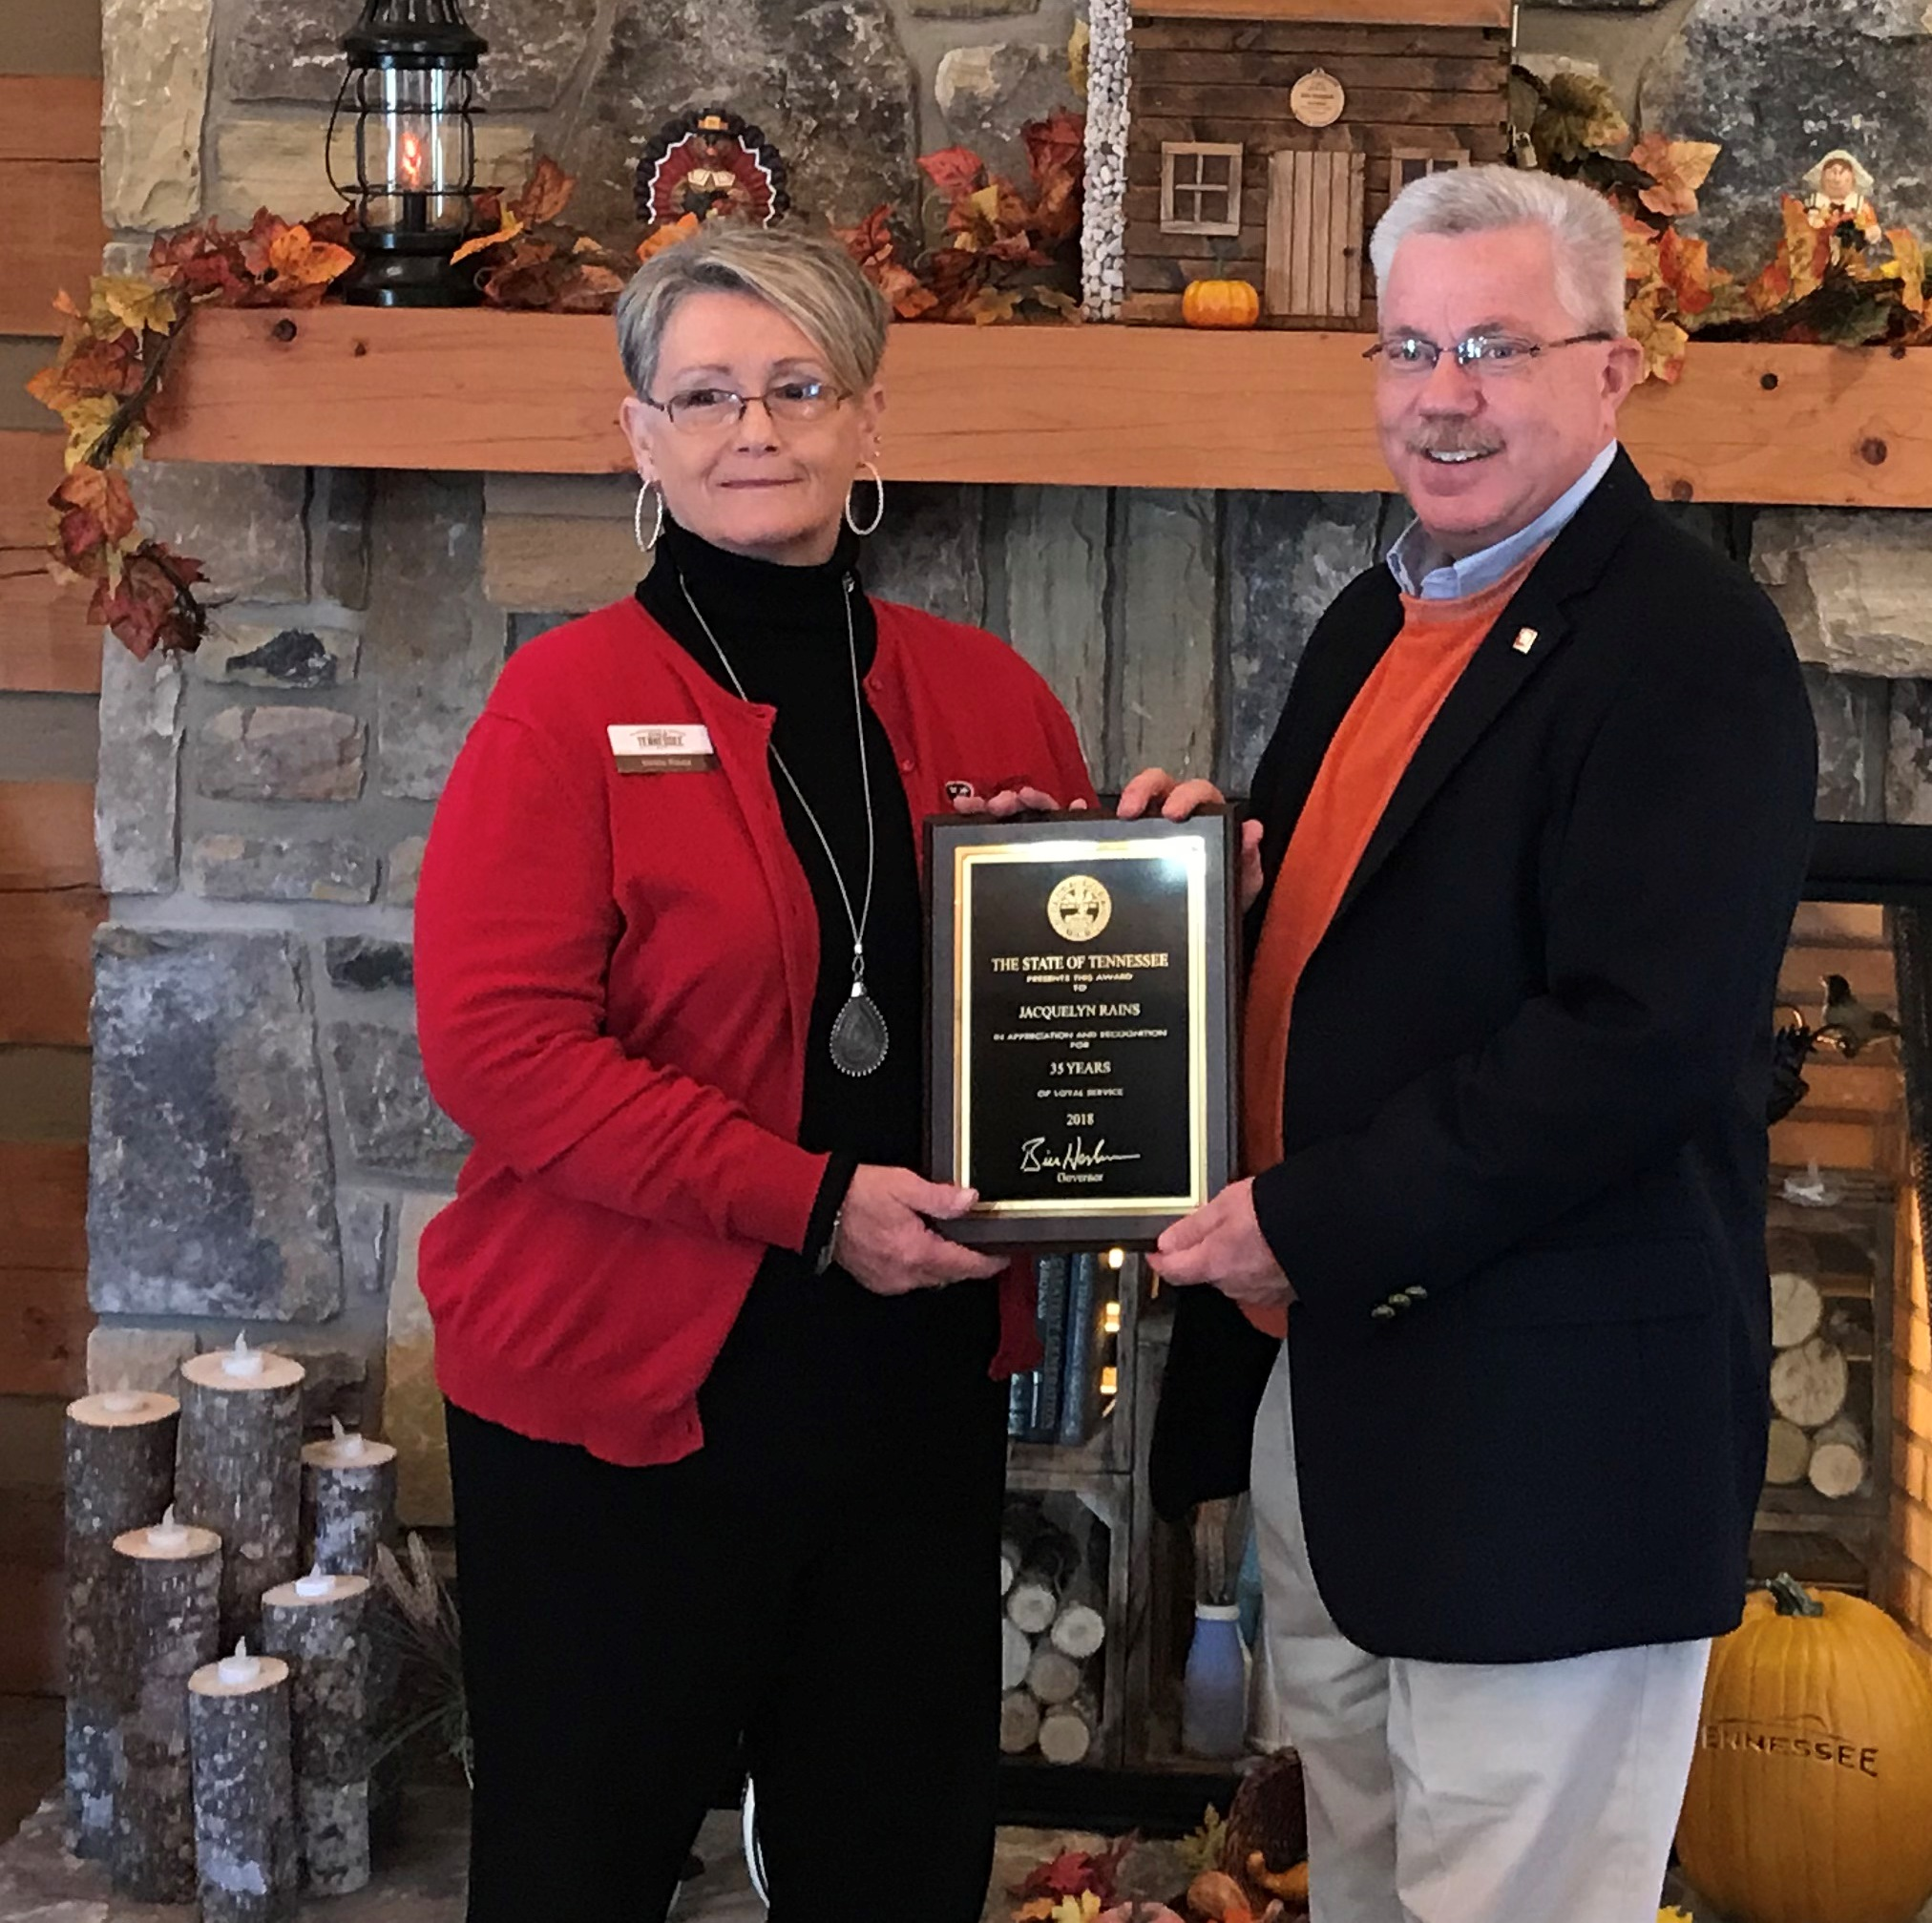 Commissioner Triplett presented Jackie Rain with a 35-year service plaque.